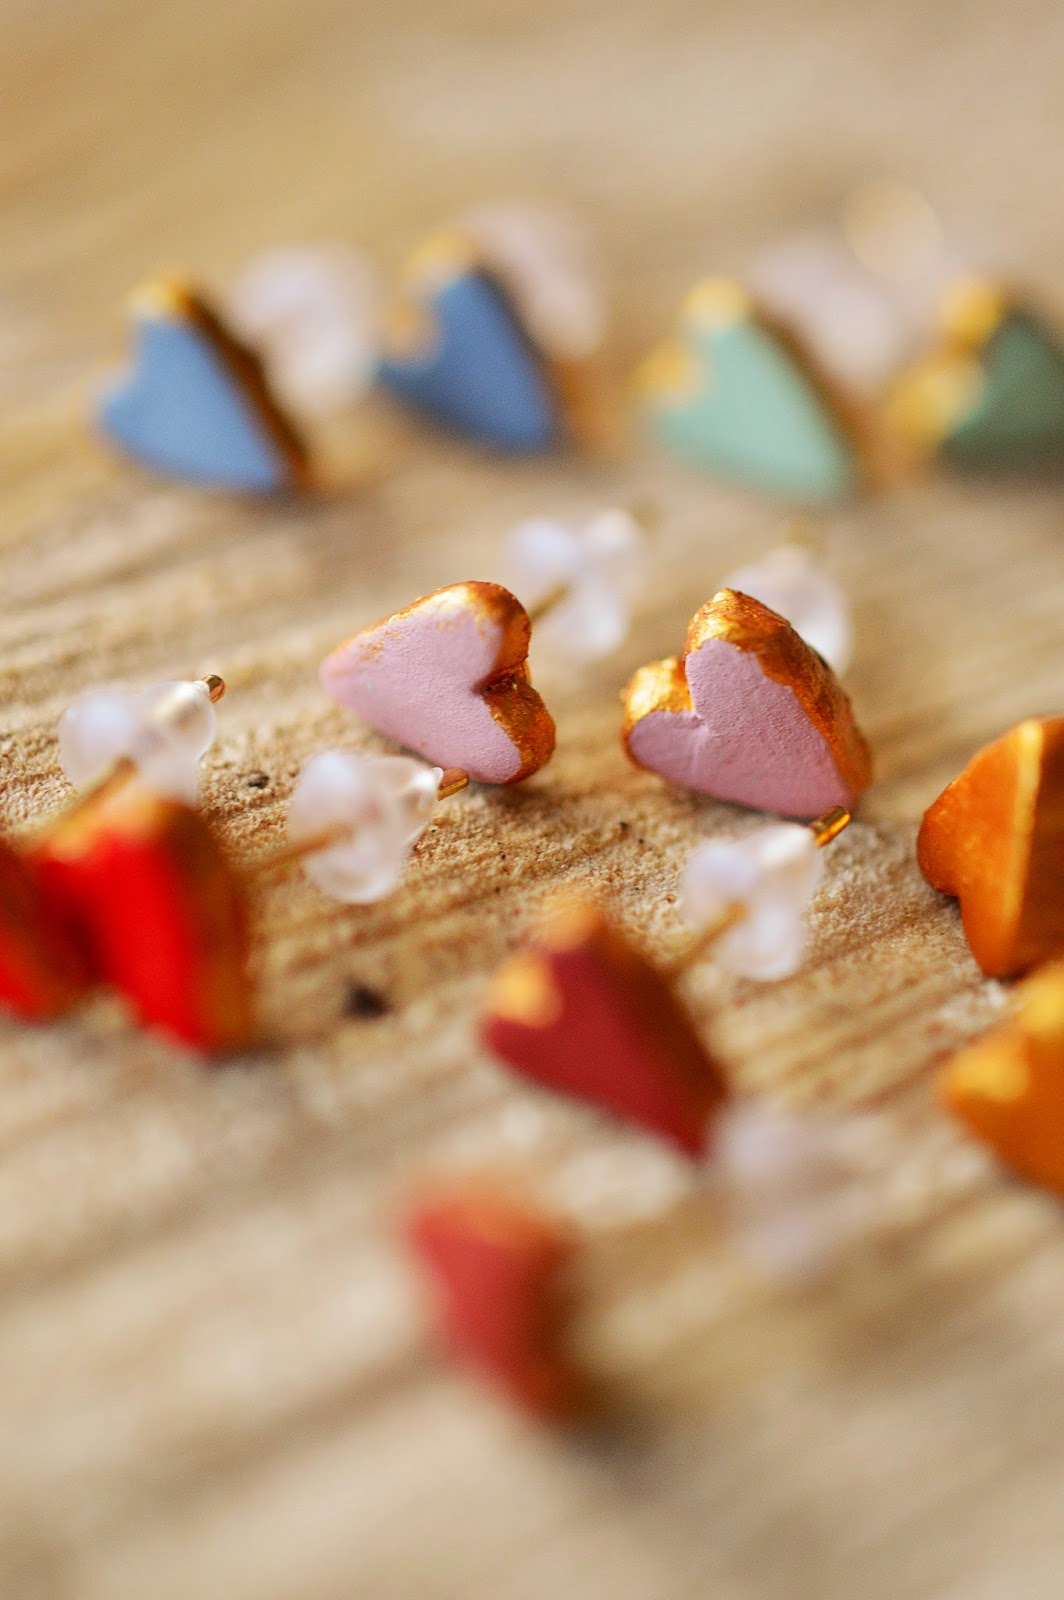 DIY Clay Love Heart Earrings | Motte's Blog